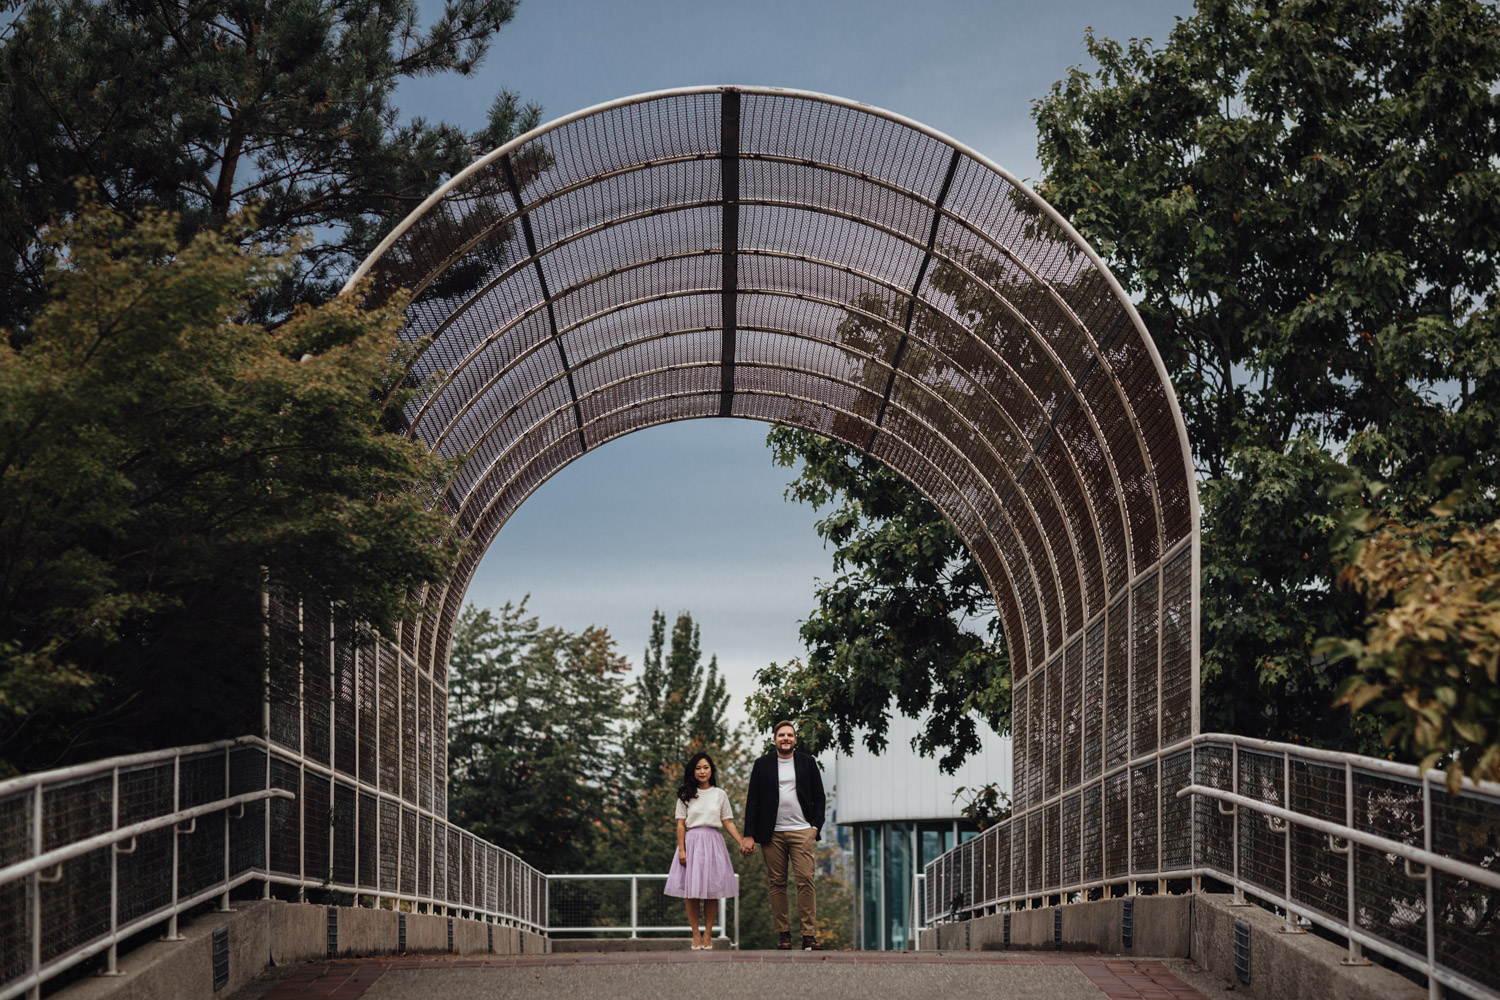 waterfront park bridge in north vancouver for engagement photography